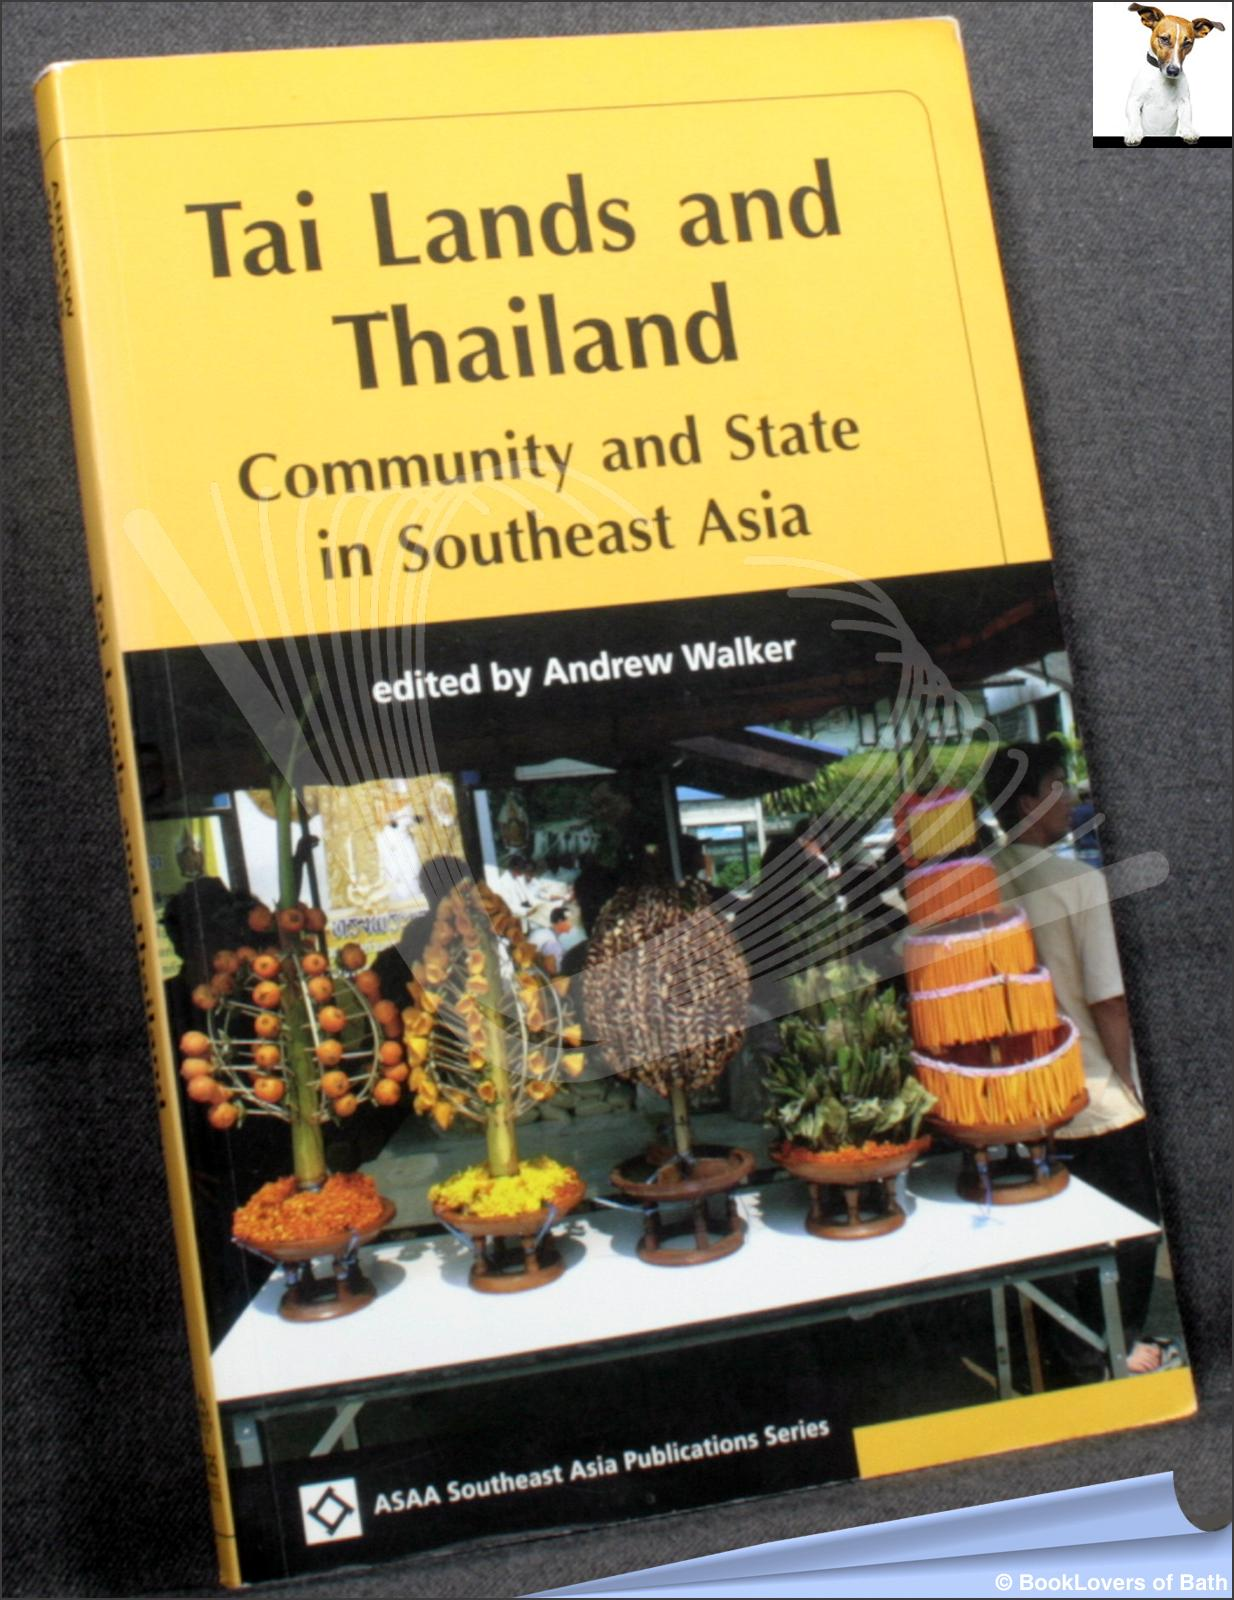 Tai Lands and Thailand - Edited by Andrew Walker